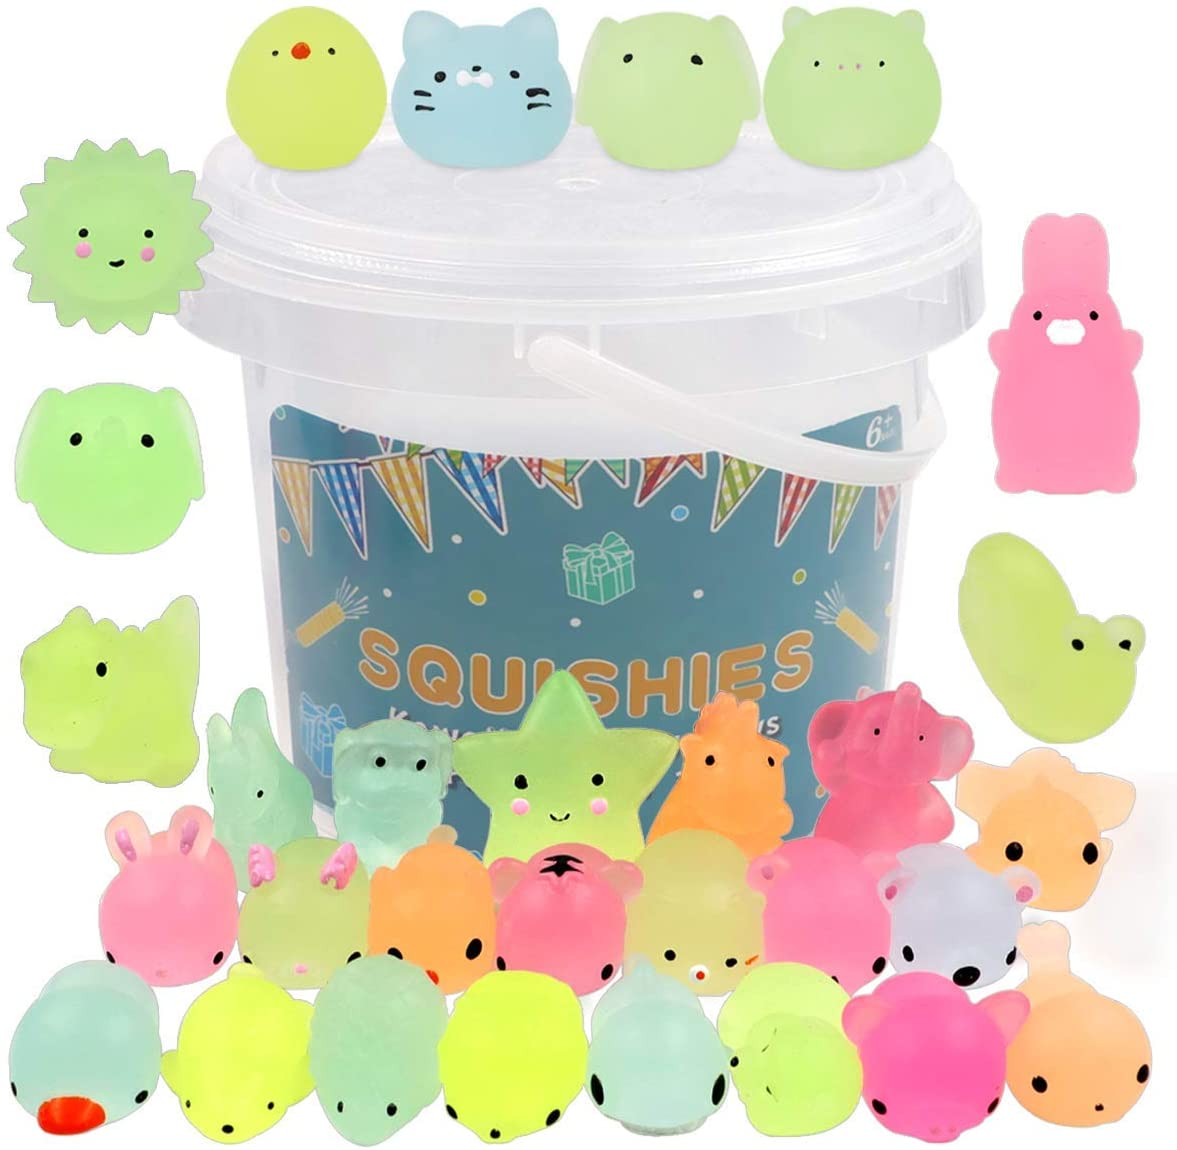 POKONBOY 23 Pack Squishies Mochi Squishy Toys Glow in The Dark Party Favors for Kids - Mini Kawaii Squishies Mochi Animals Stress Relief Squishy Pack Squishy Cat Squishys with Storage Box